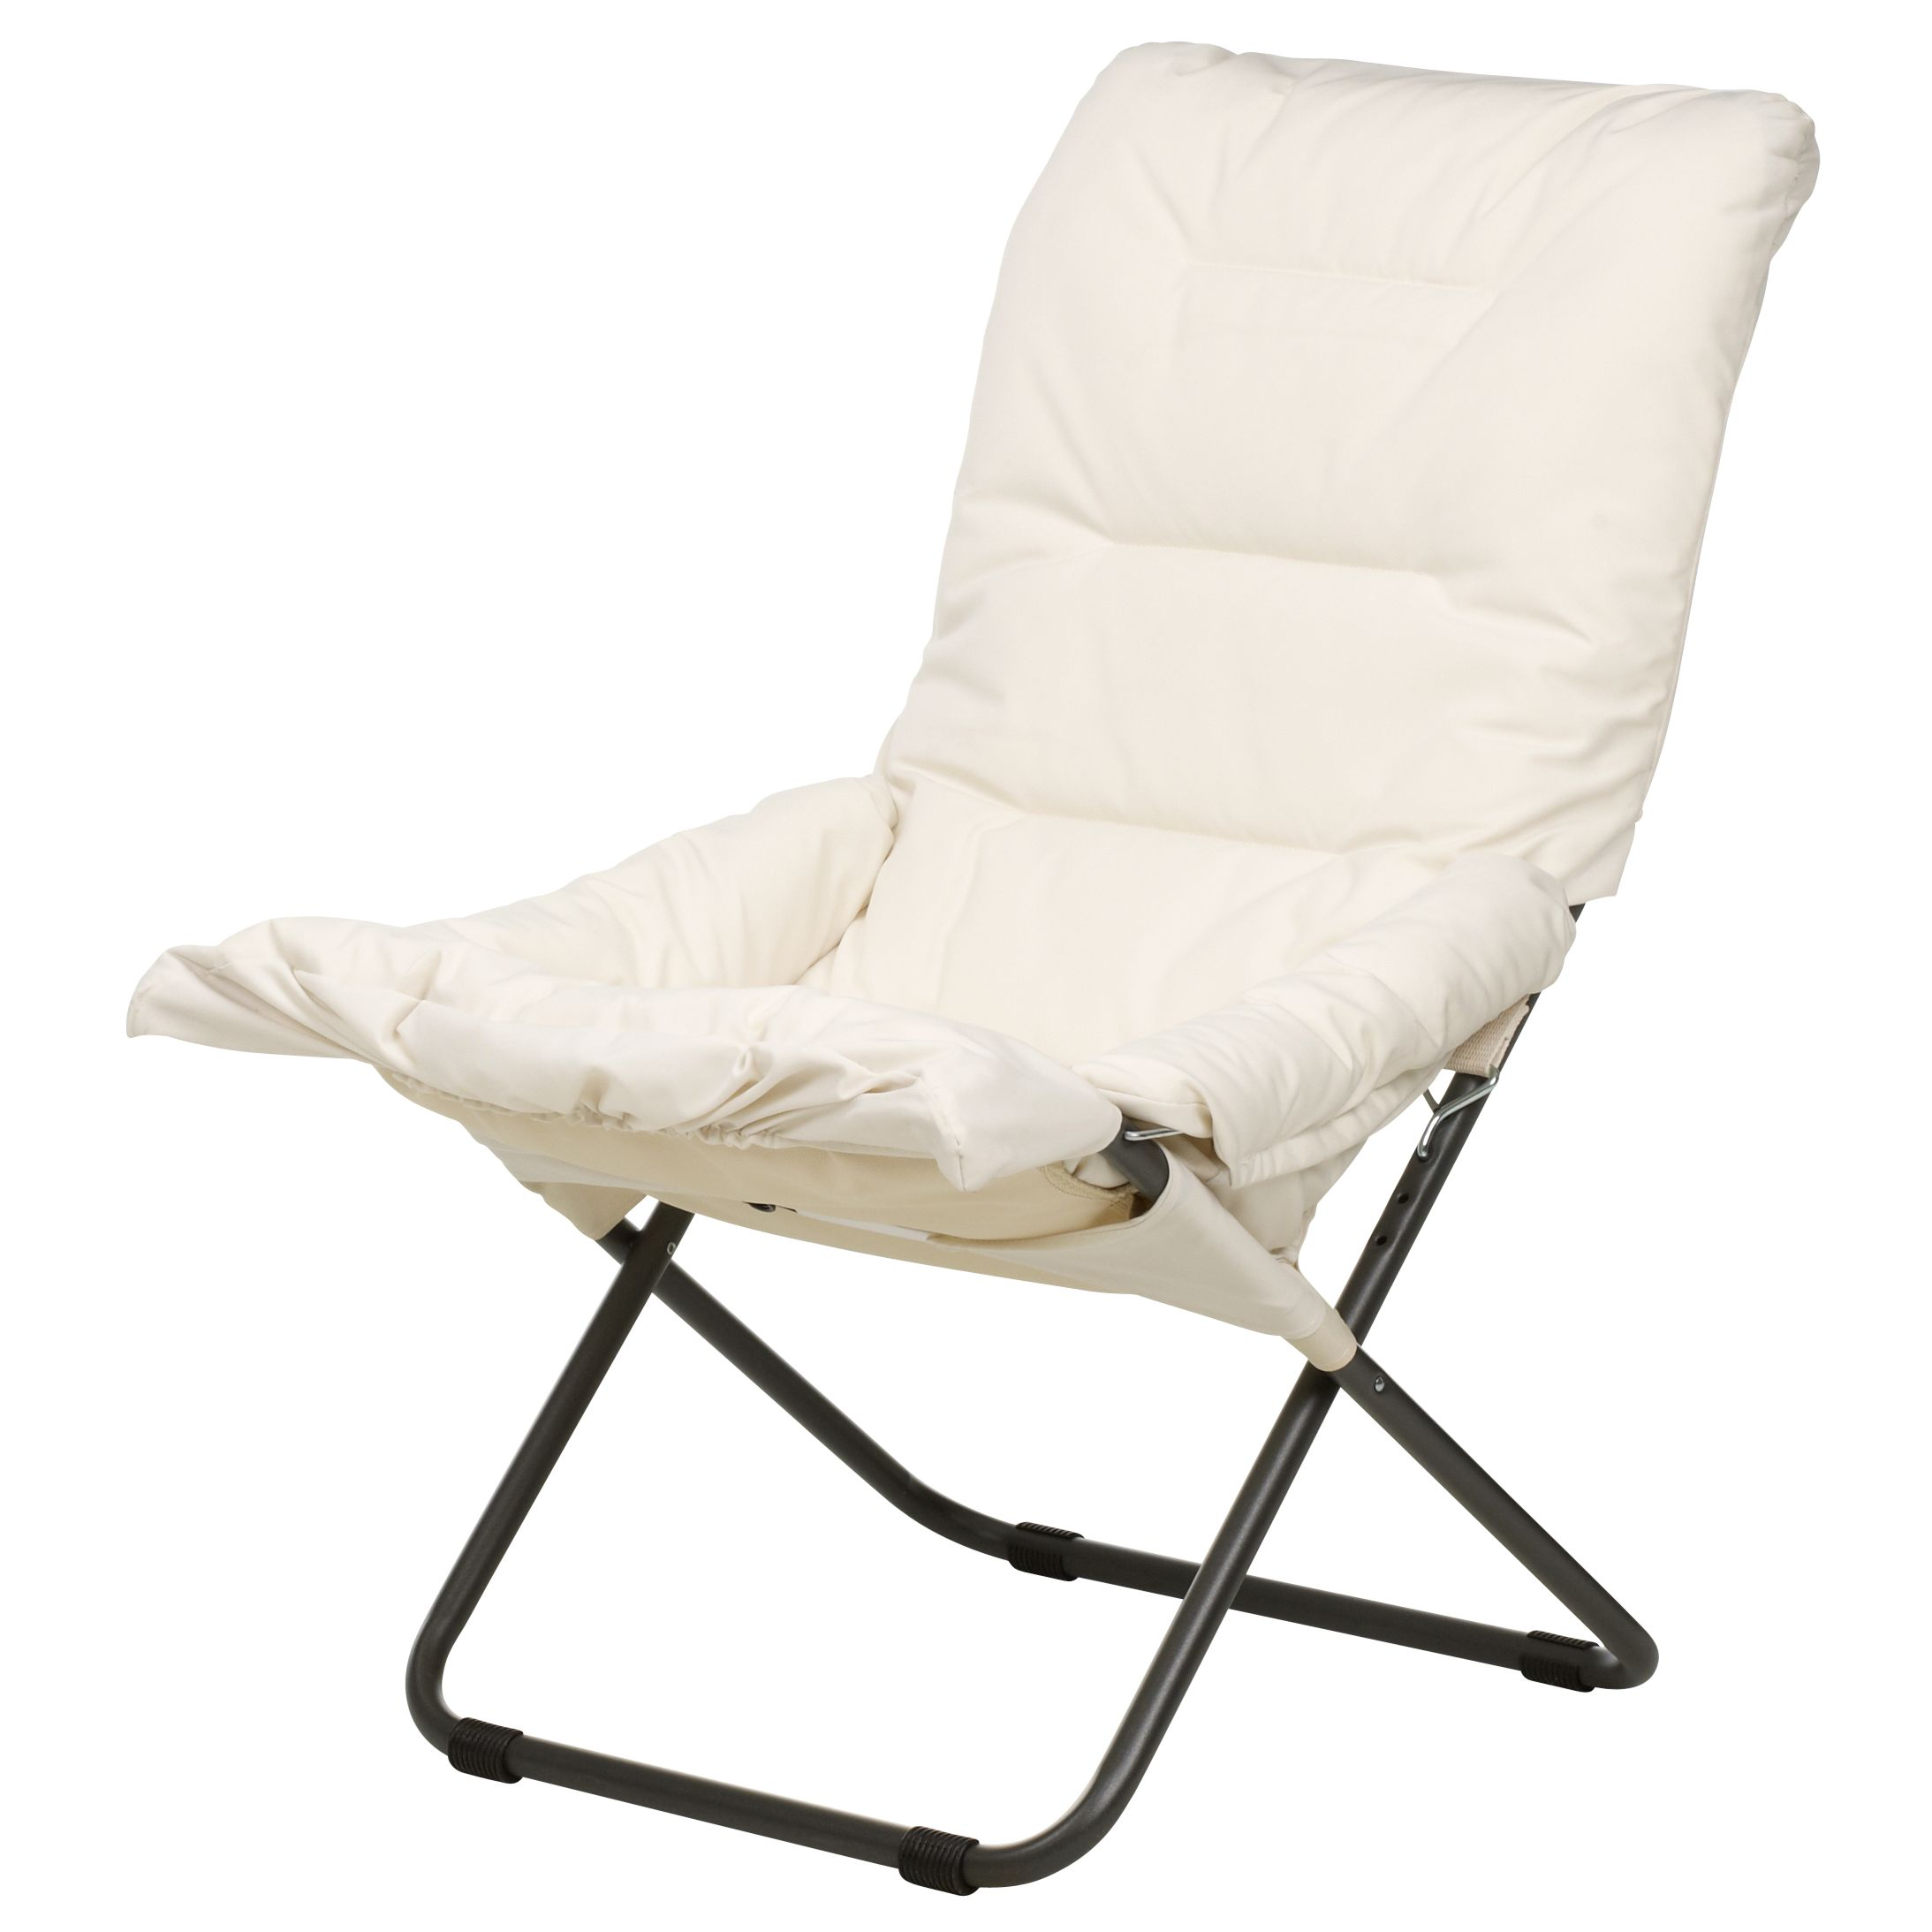 Fiesta Soft Chair, Oyster